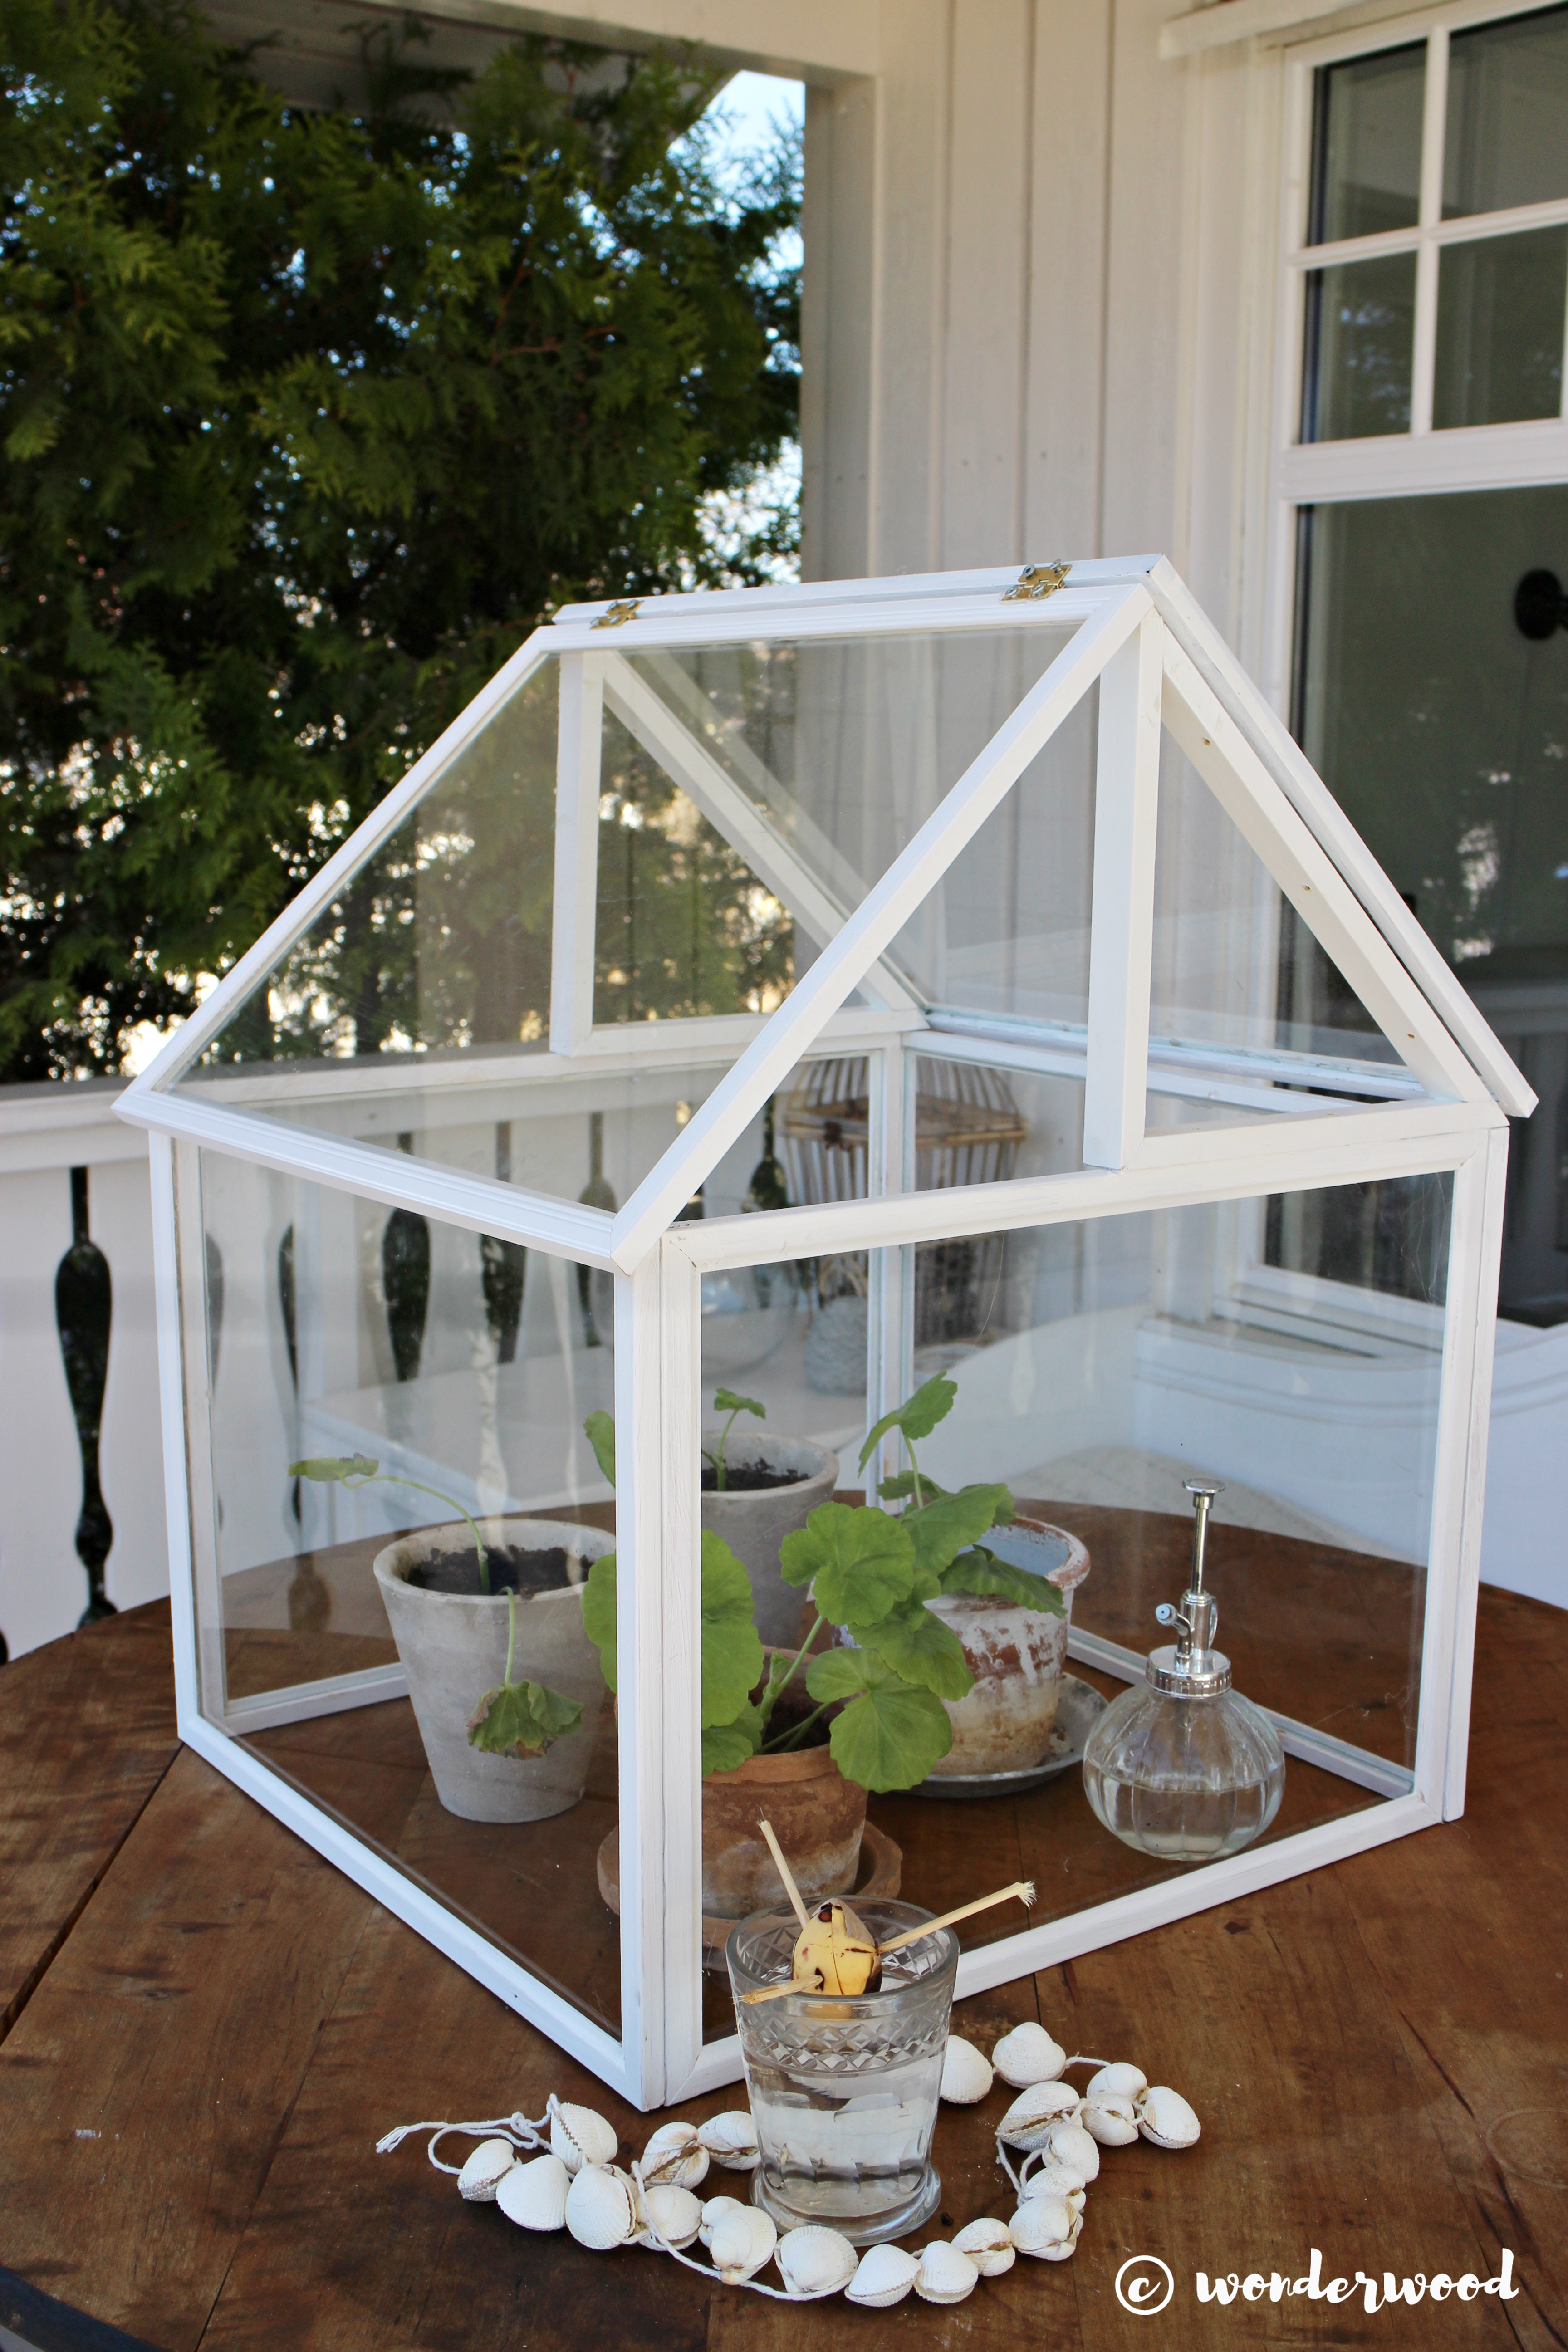 diy minidrivhus av bilderammer // diy photo frame greenhouse